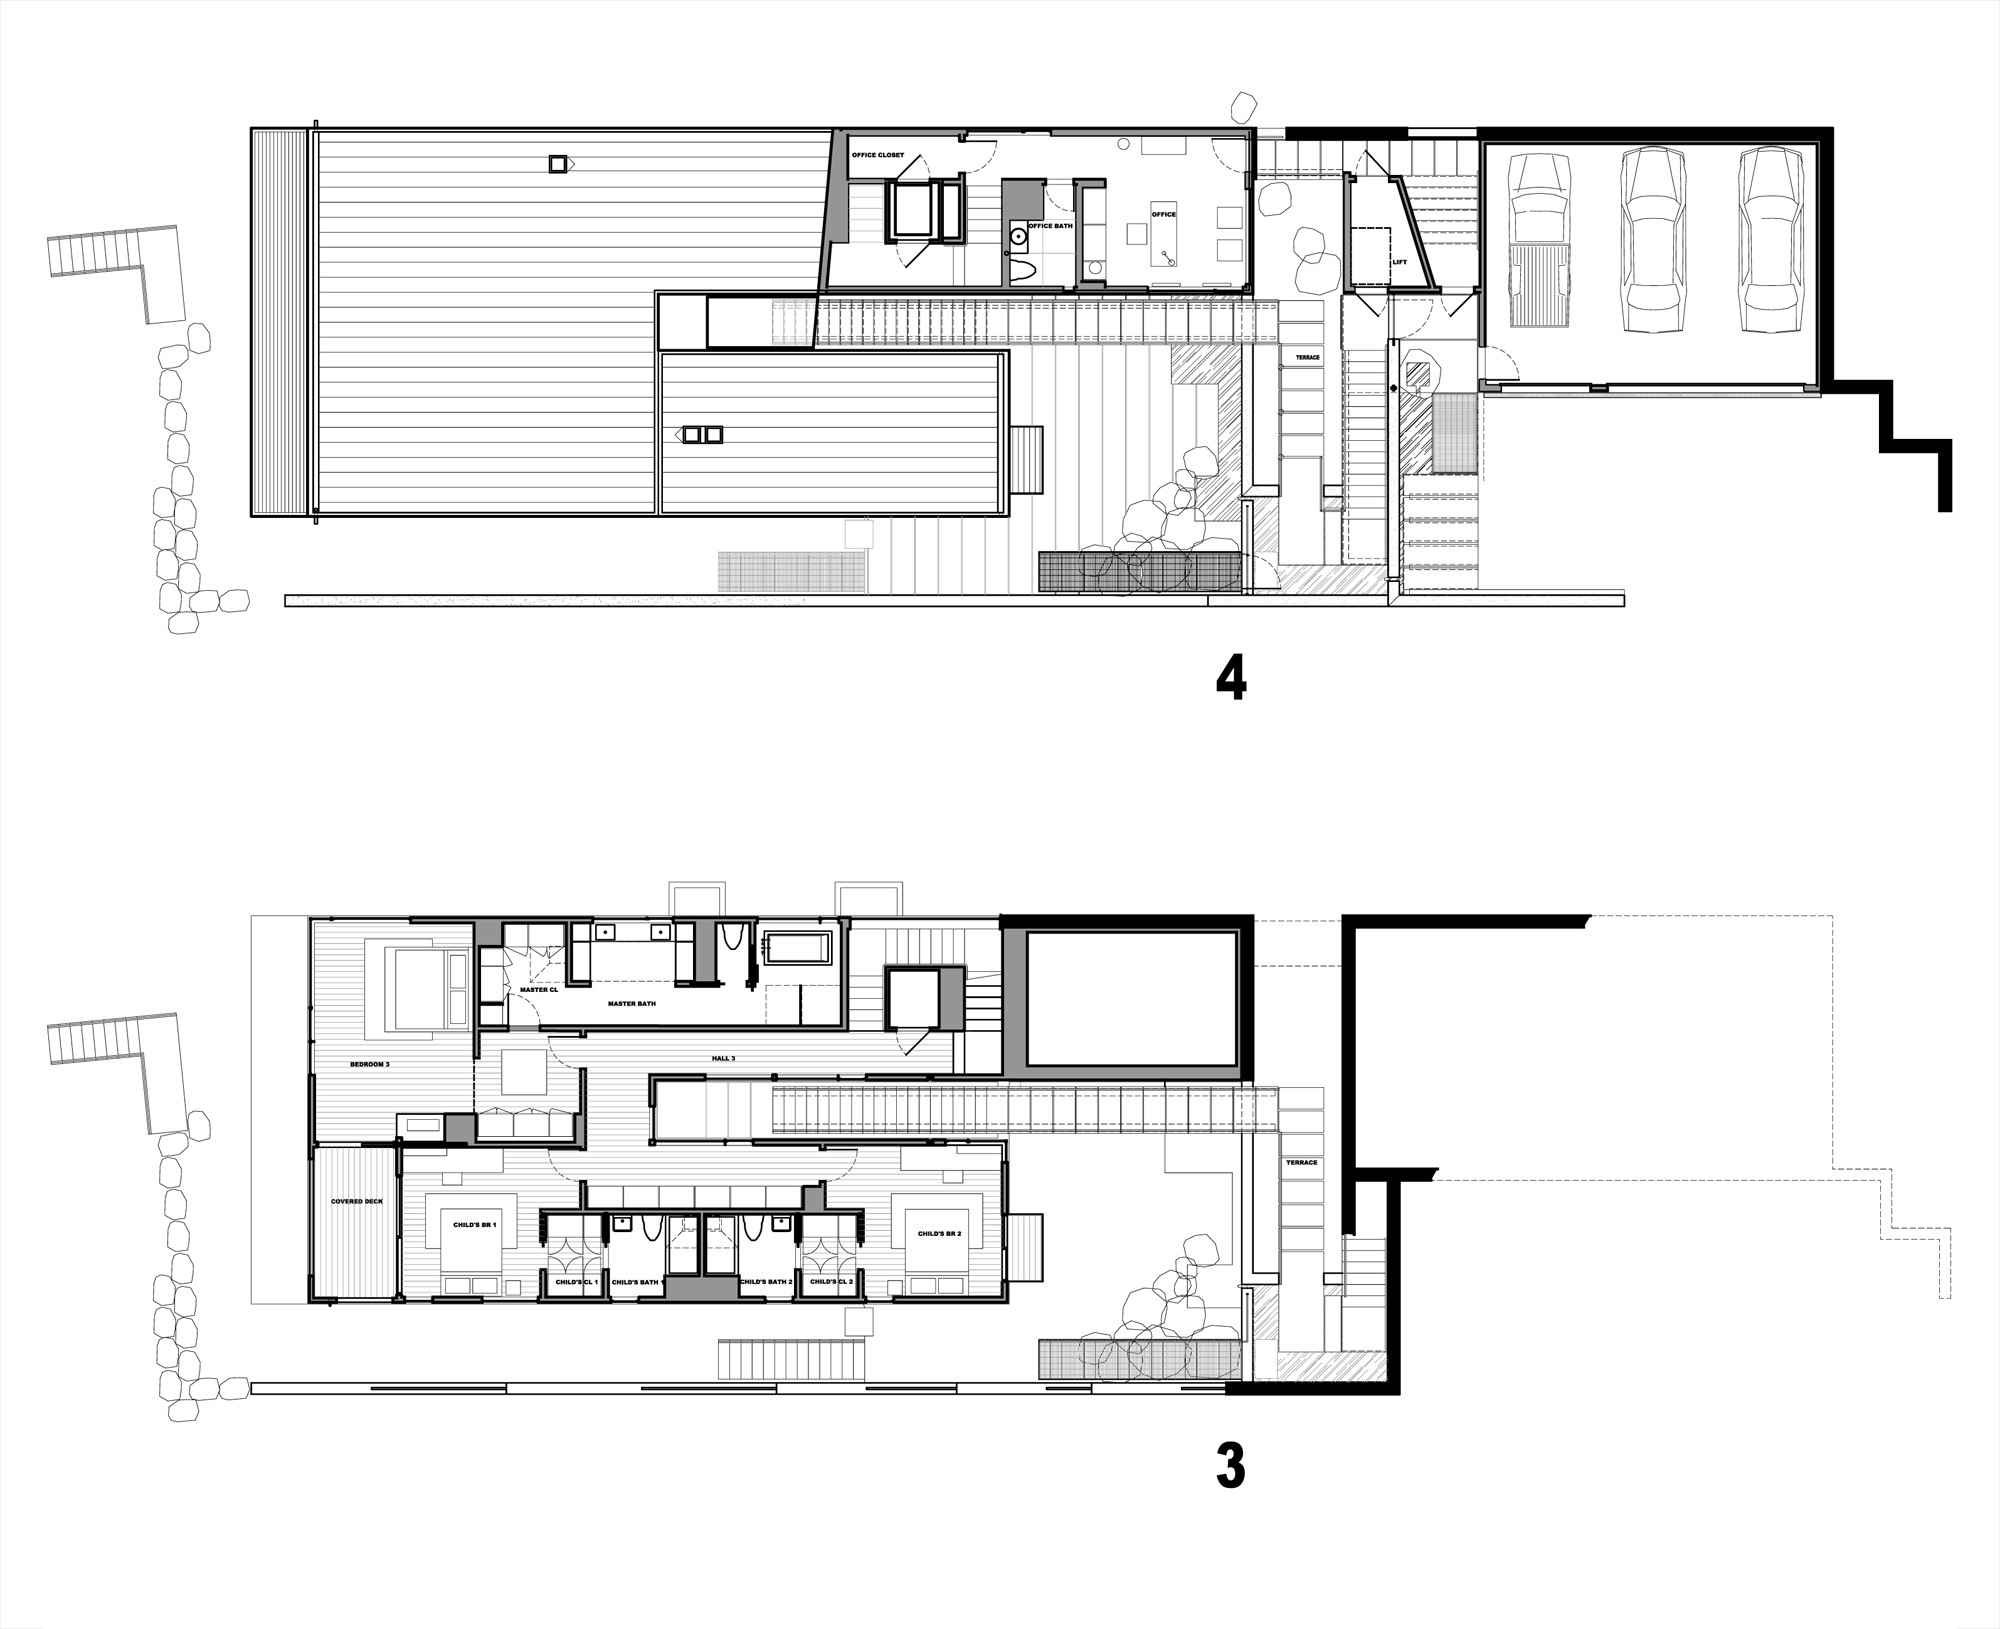 stringio Azuma House Floor Plans on moriyama house plan, loblolly house floor plan, koshino house house plan, loblolly house site plan, japan house plan, amuza house floor plan, ito house plan,